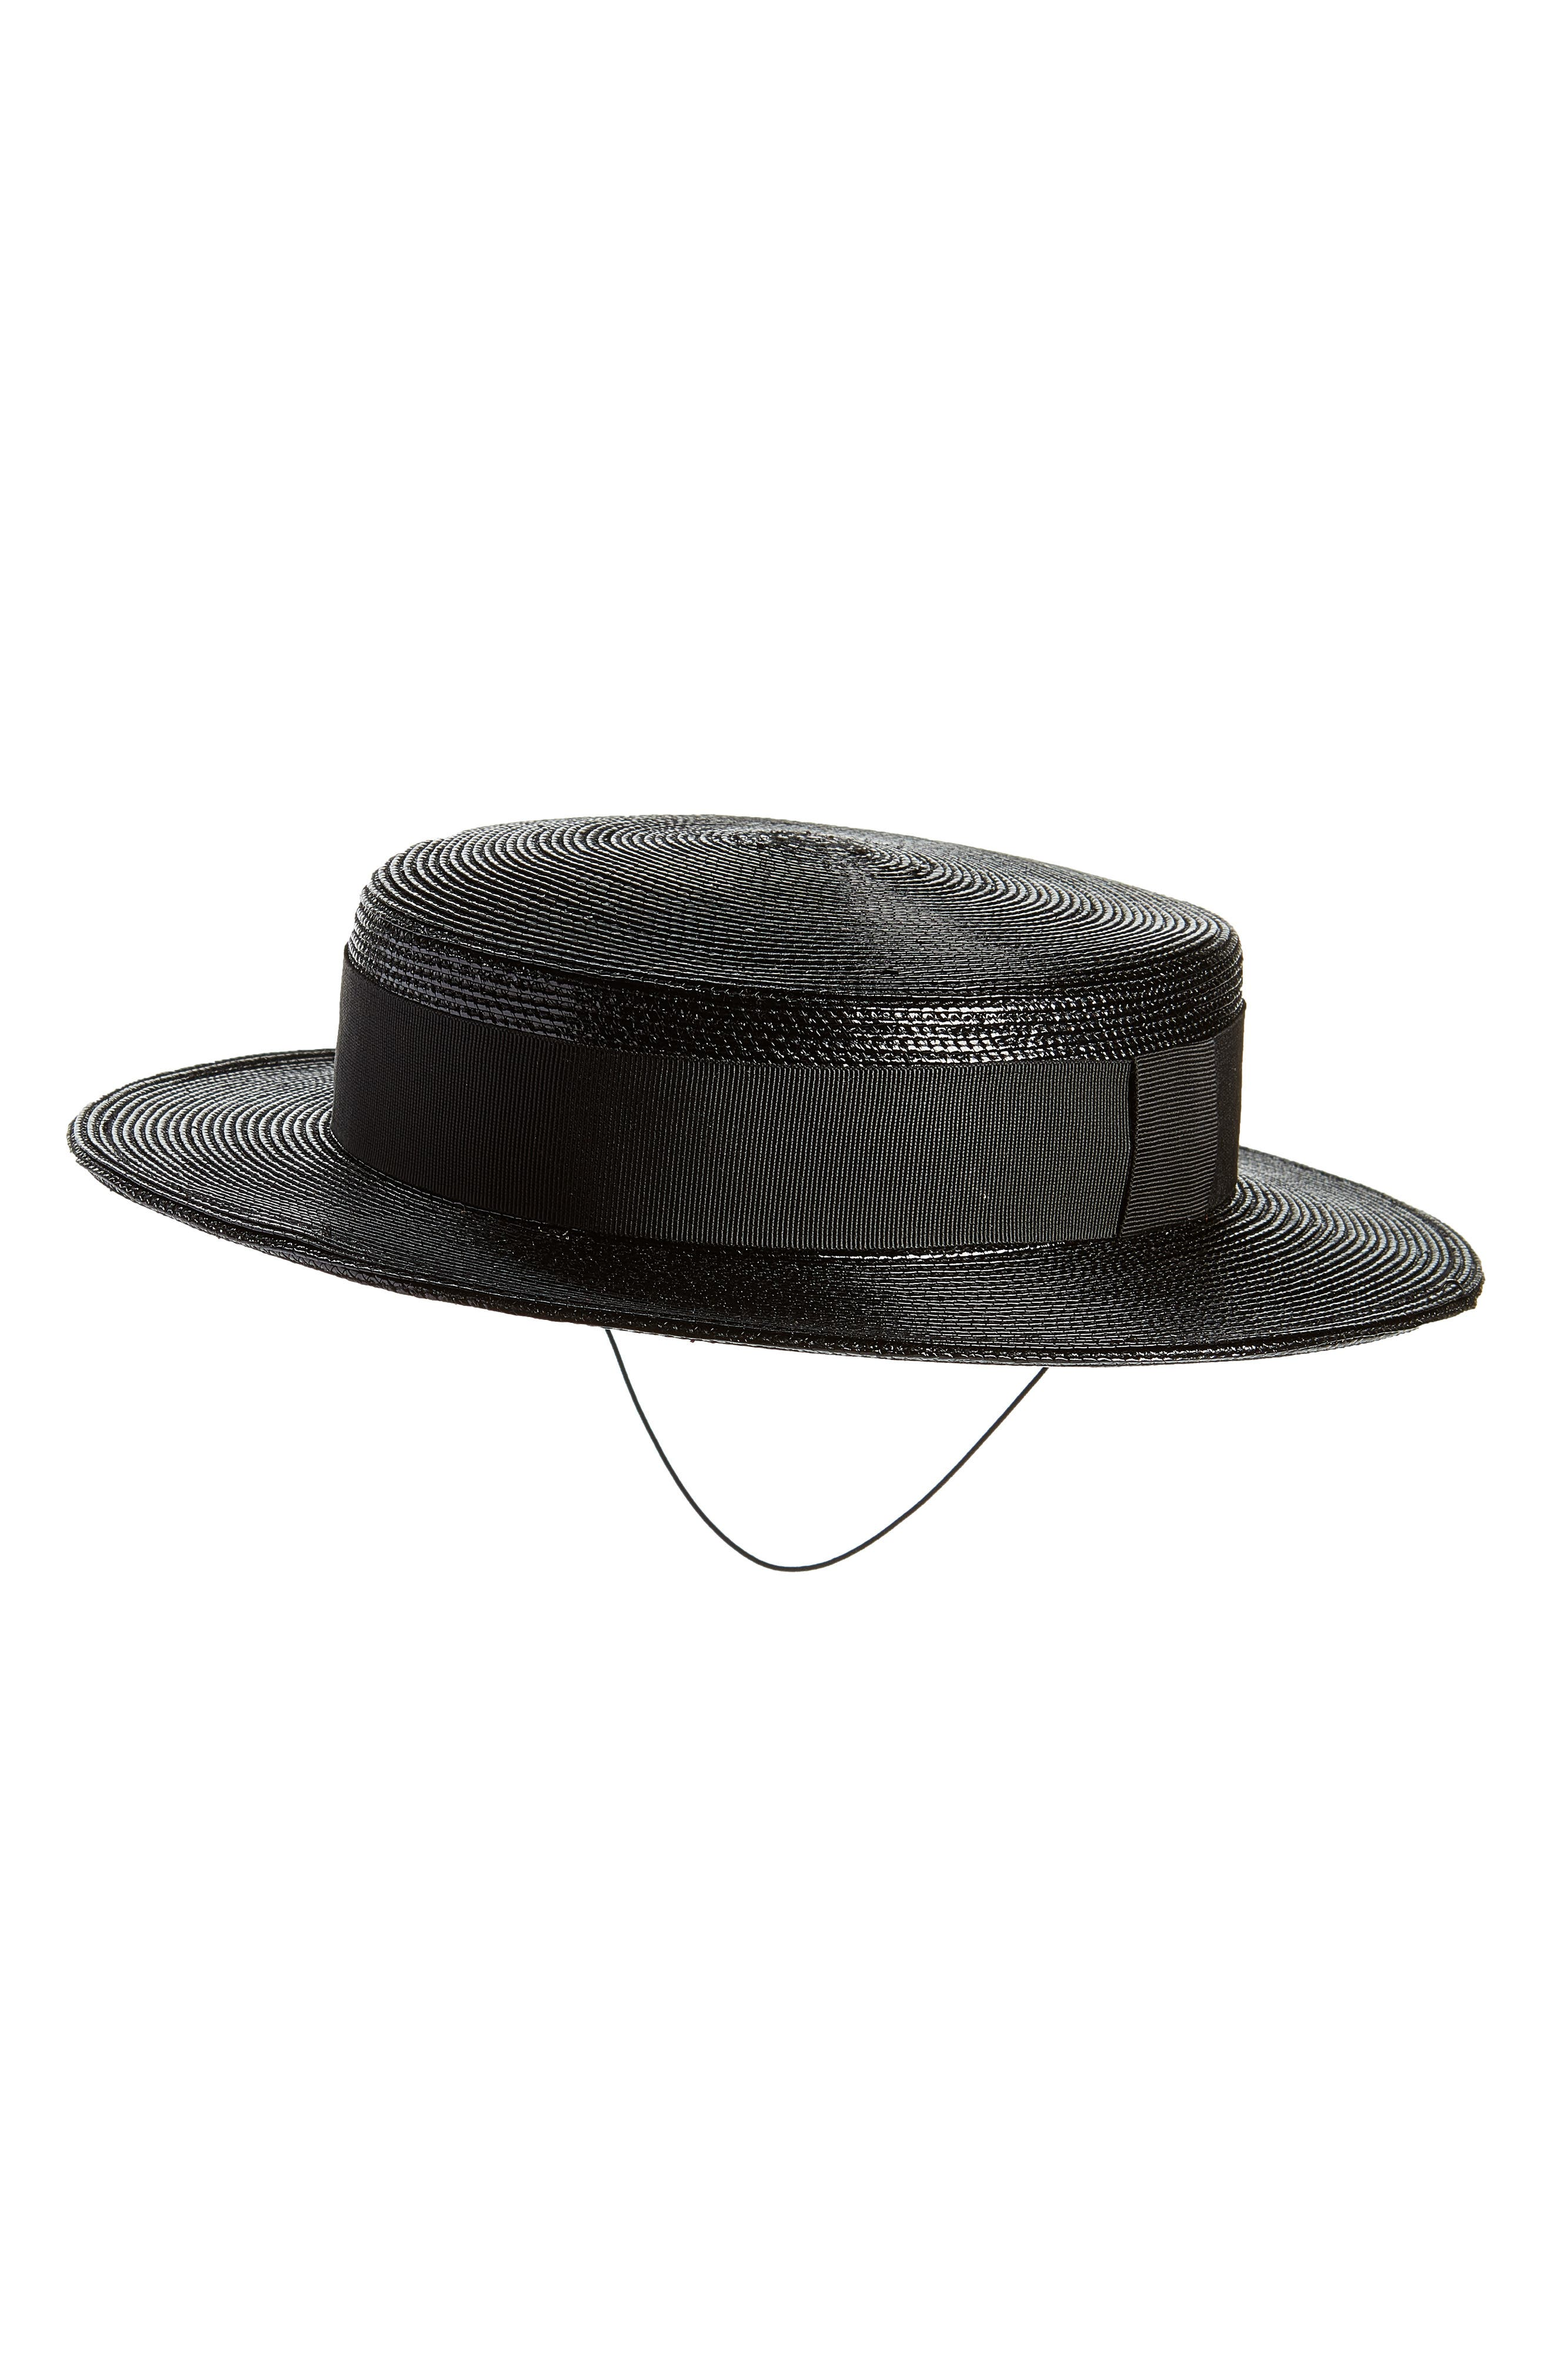 SAINT LAURENT Petite Boater Hat, Main, color, 001